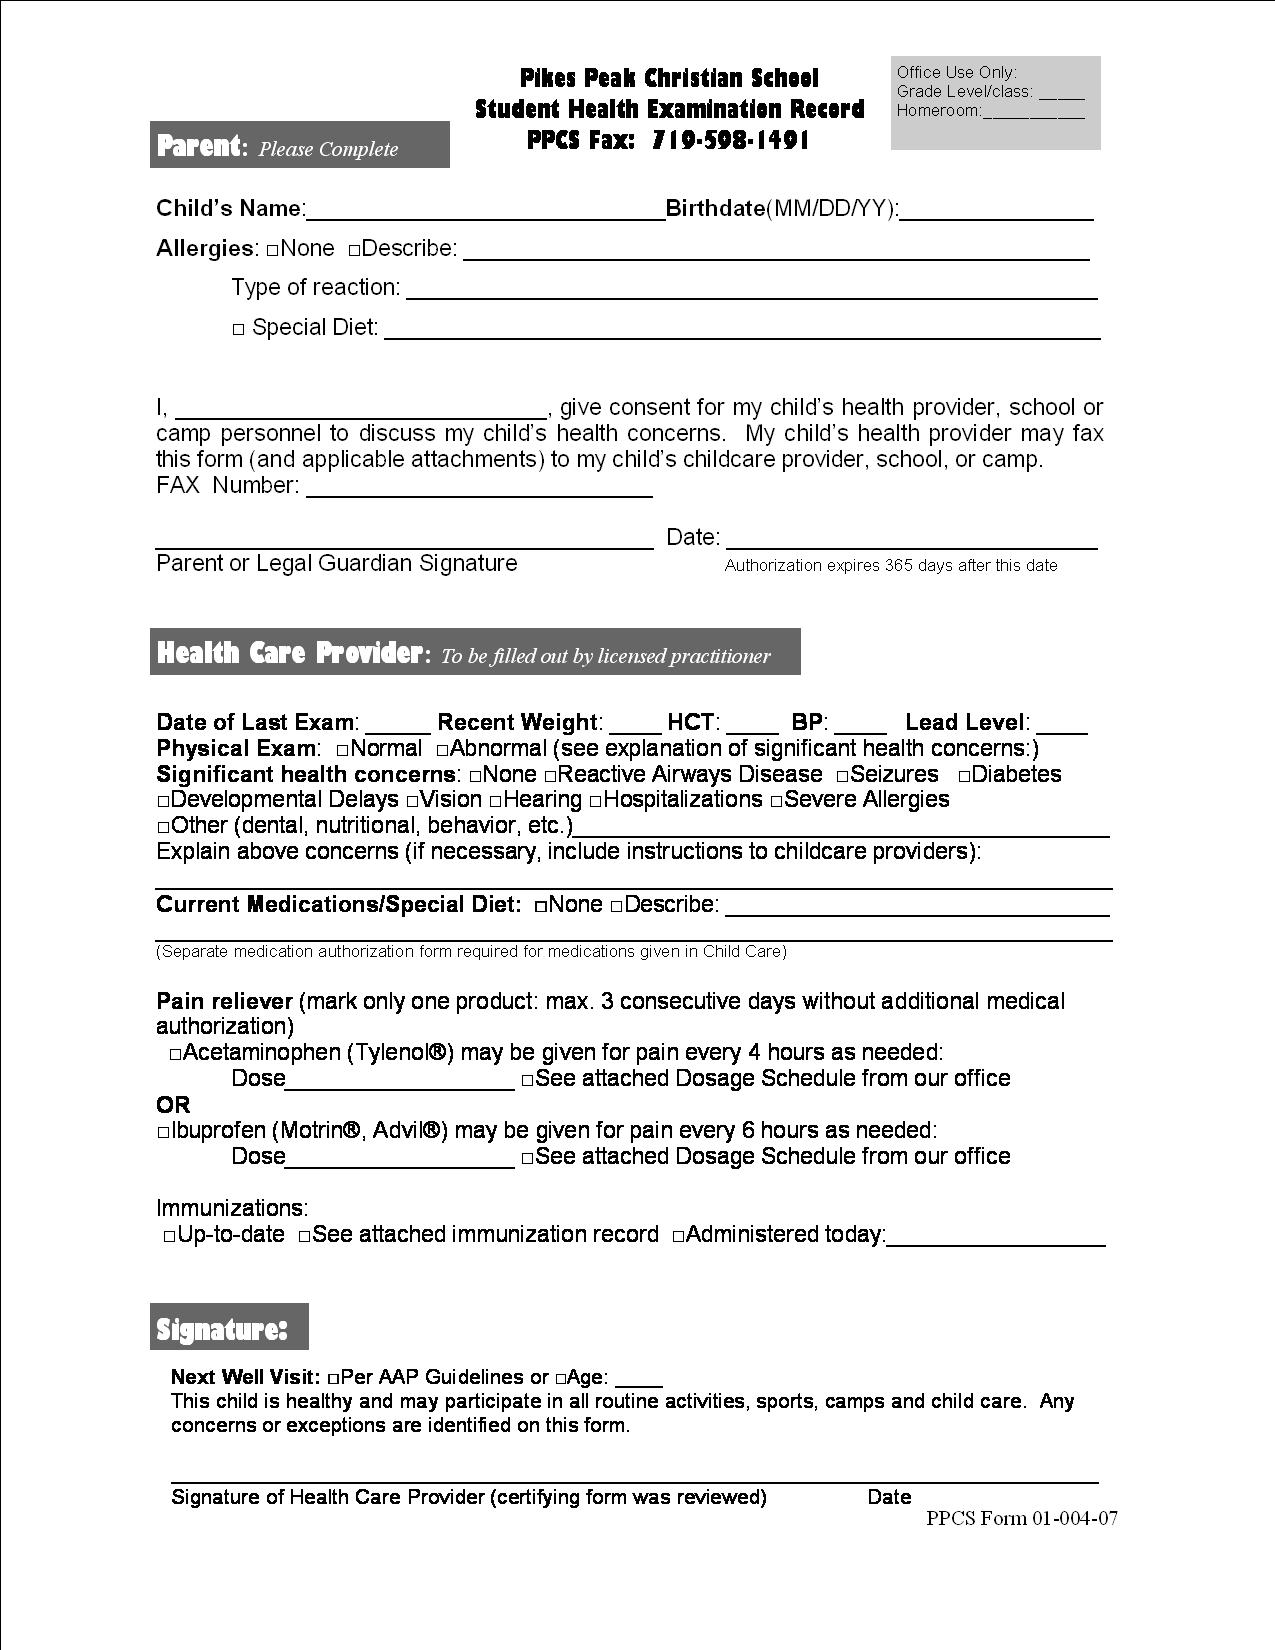 MS Athletic Forms - Pikes Peak Christian School